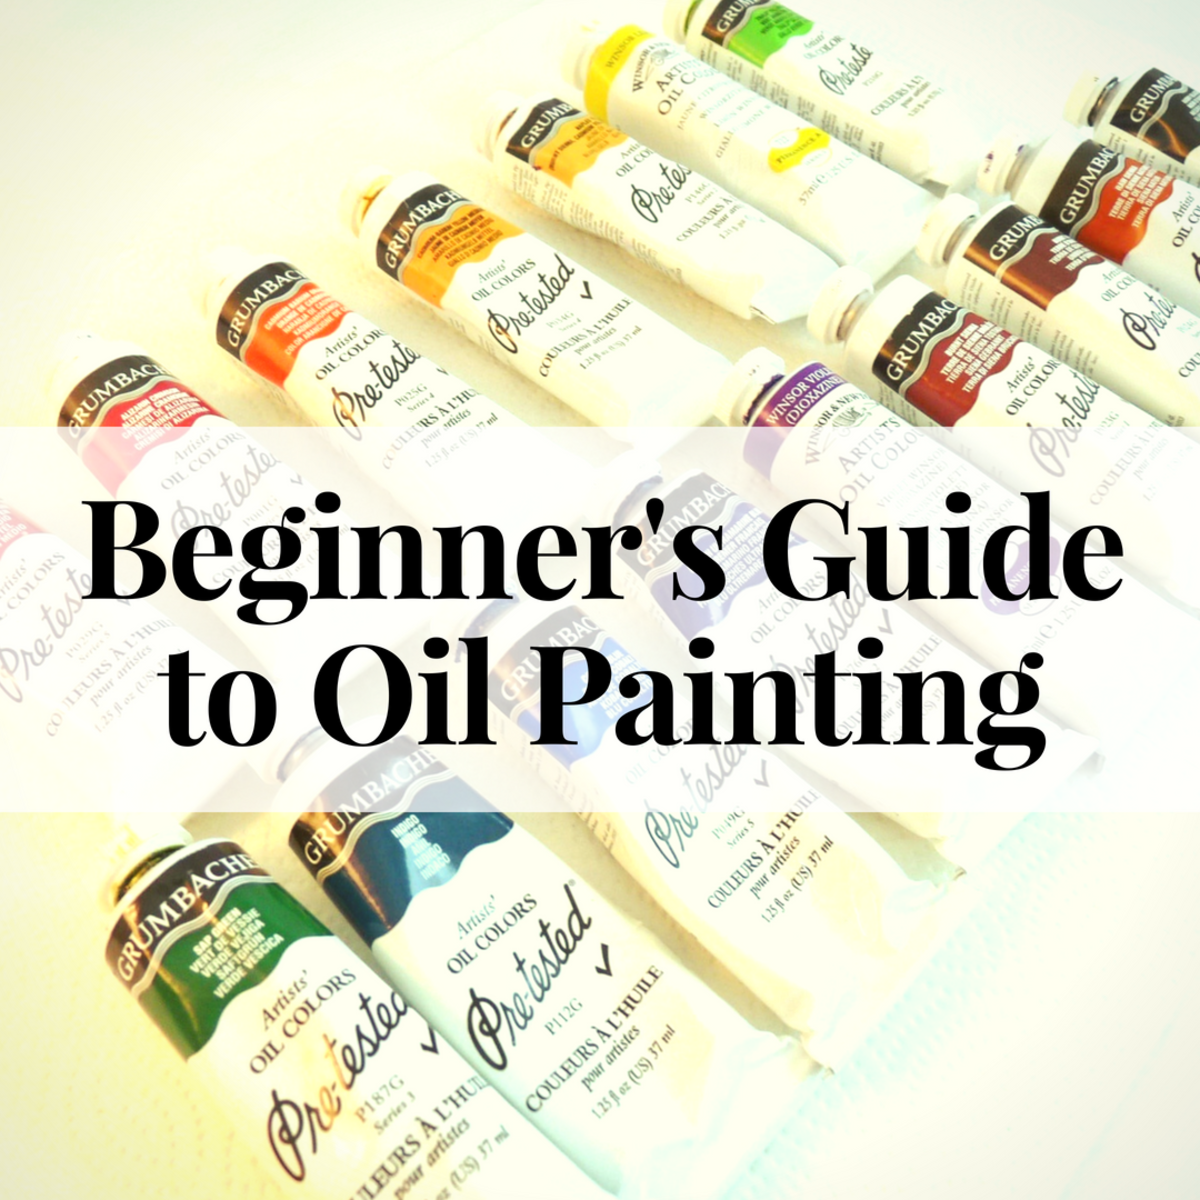 Beginner's Guide to Oil Painting: Part 1